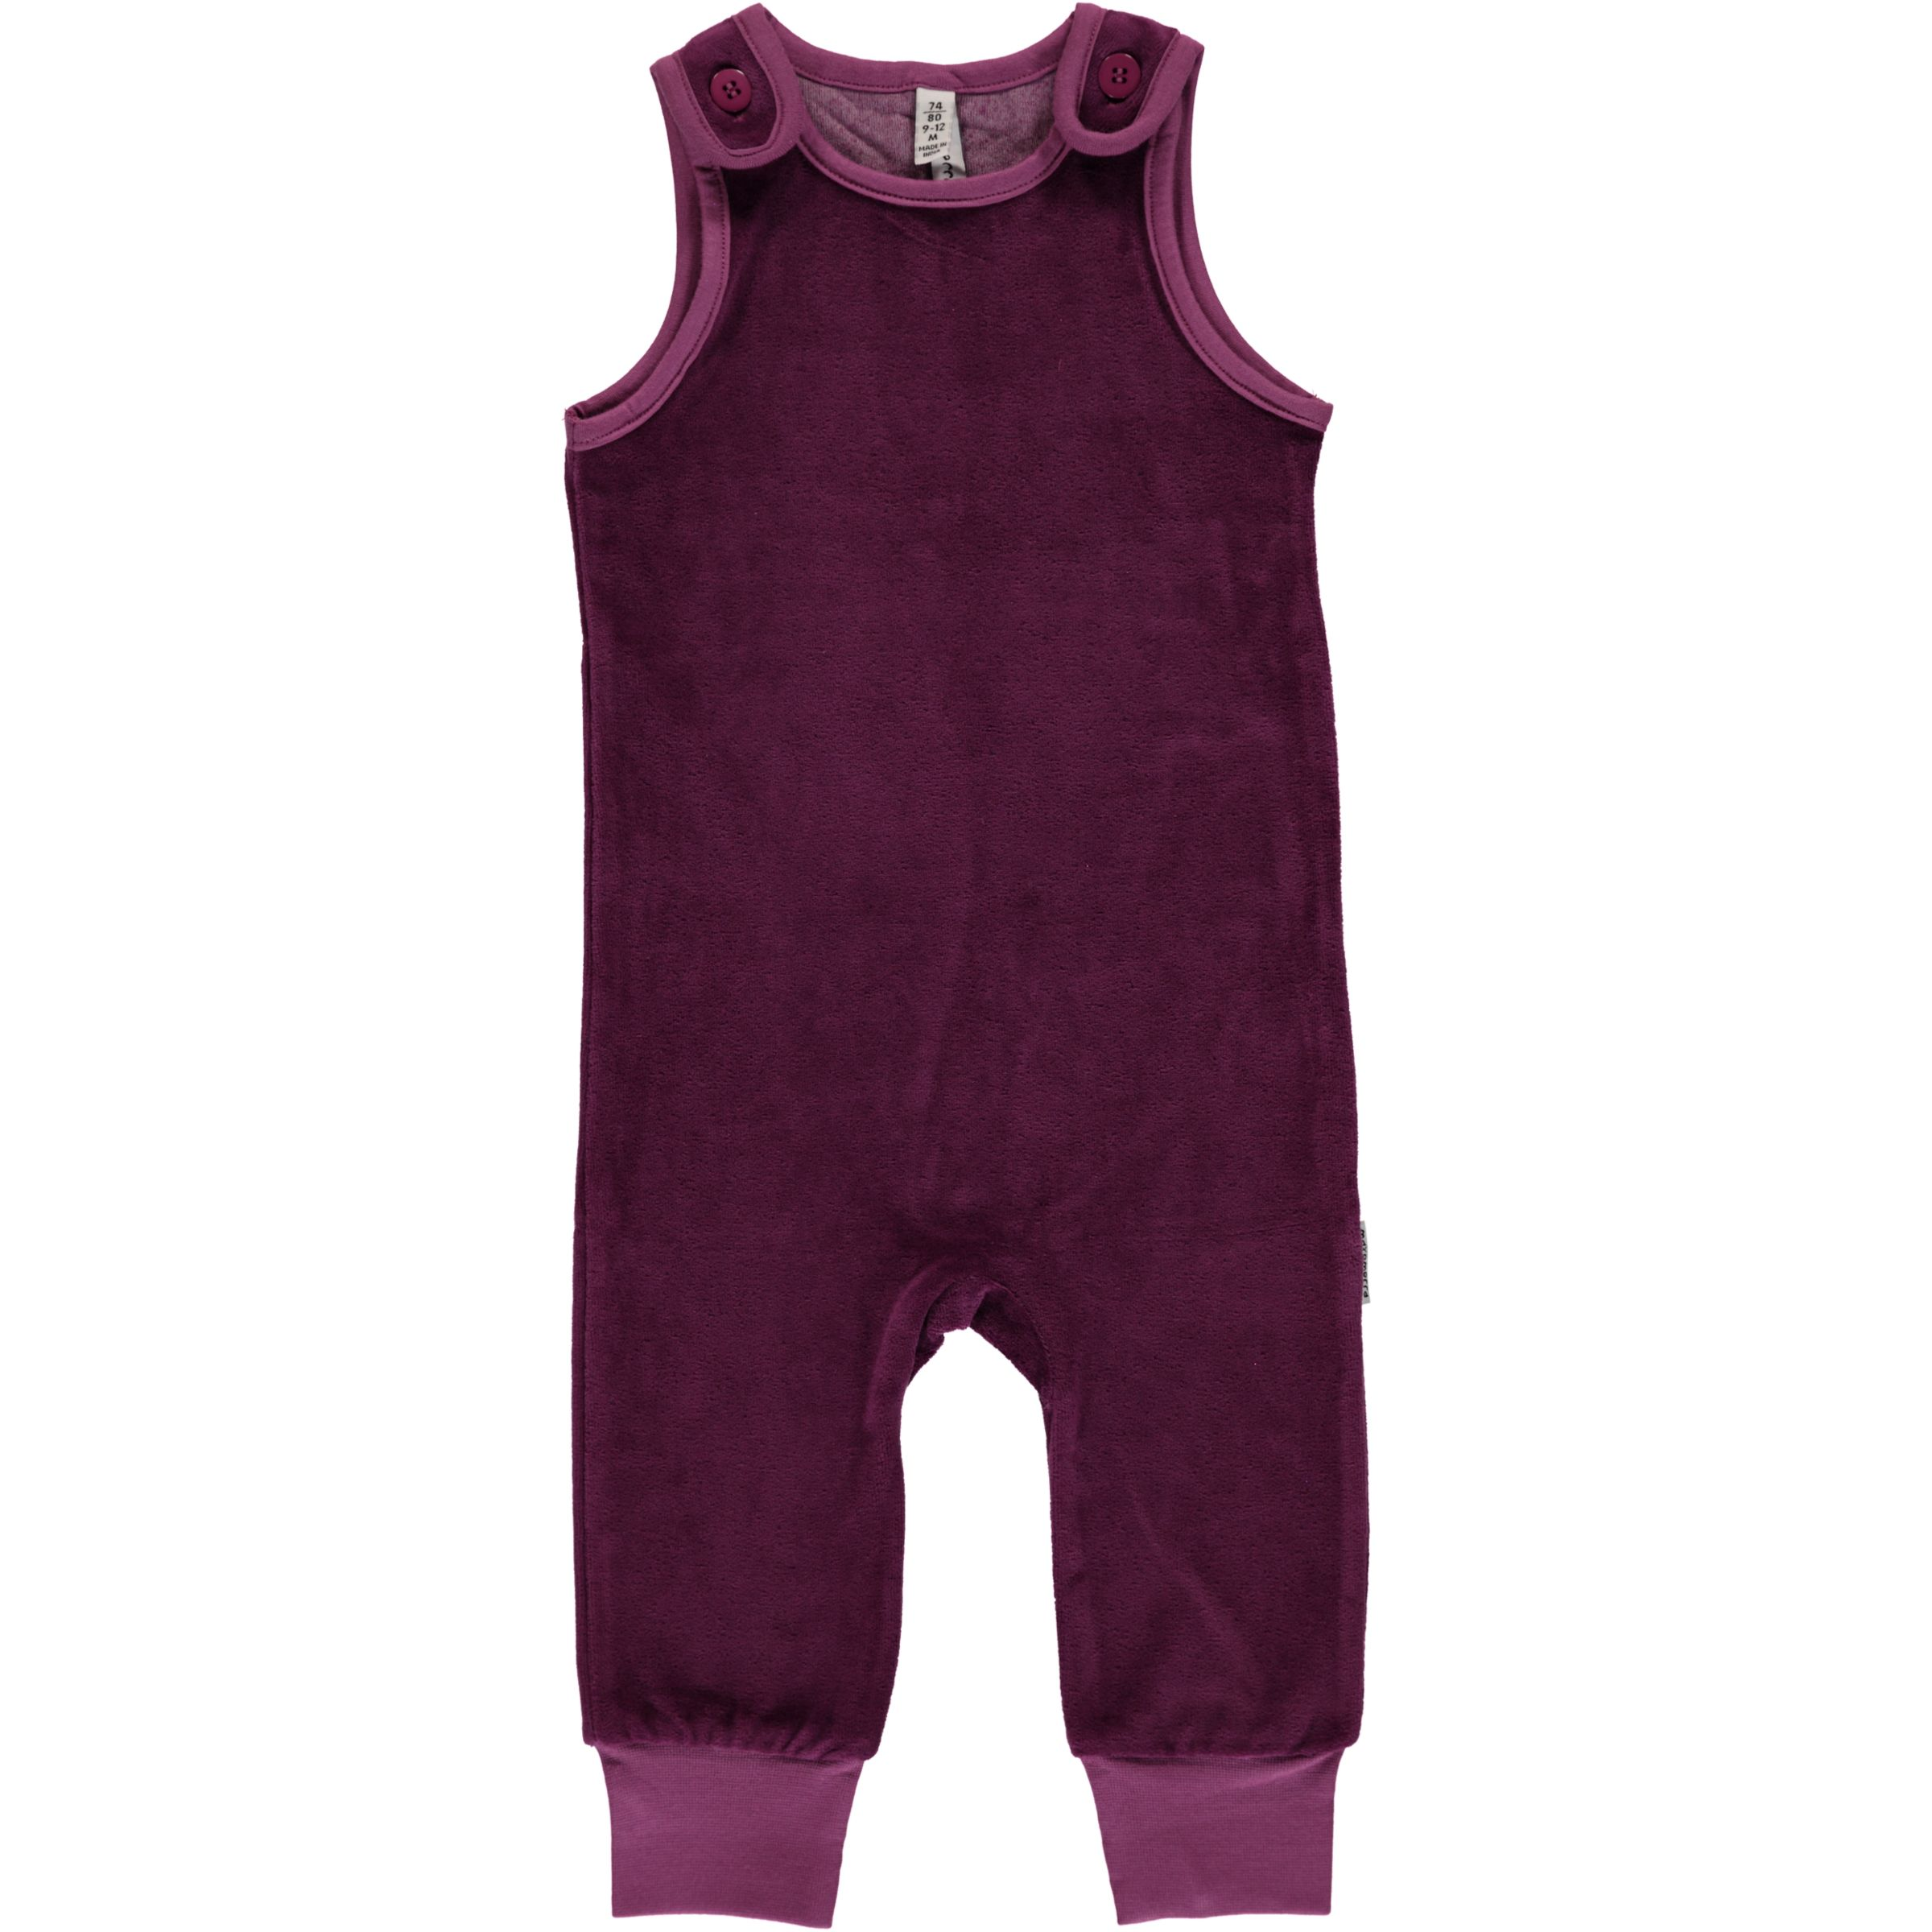 0a967659f2f Purple dungarees by Maxomorra in organic blend velour